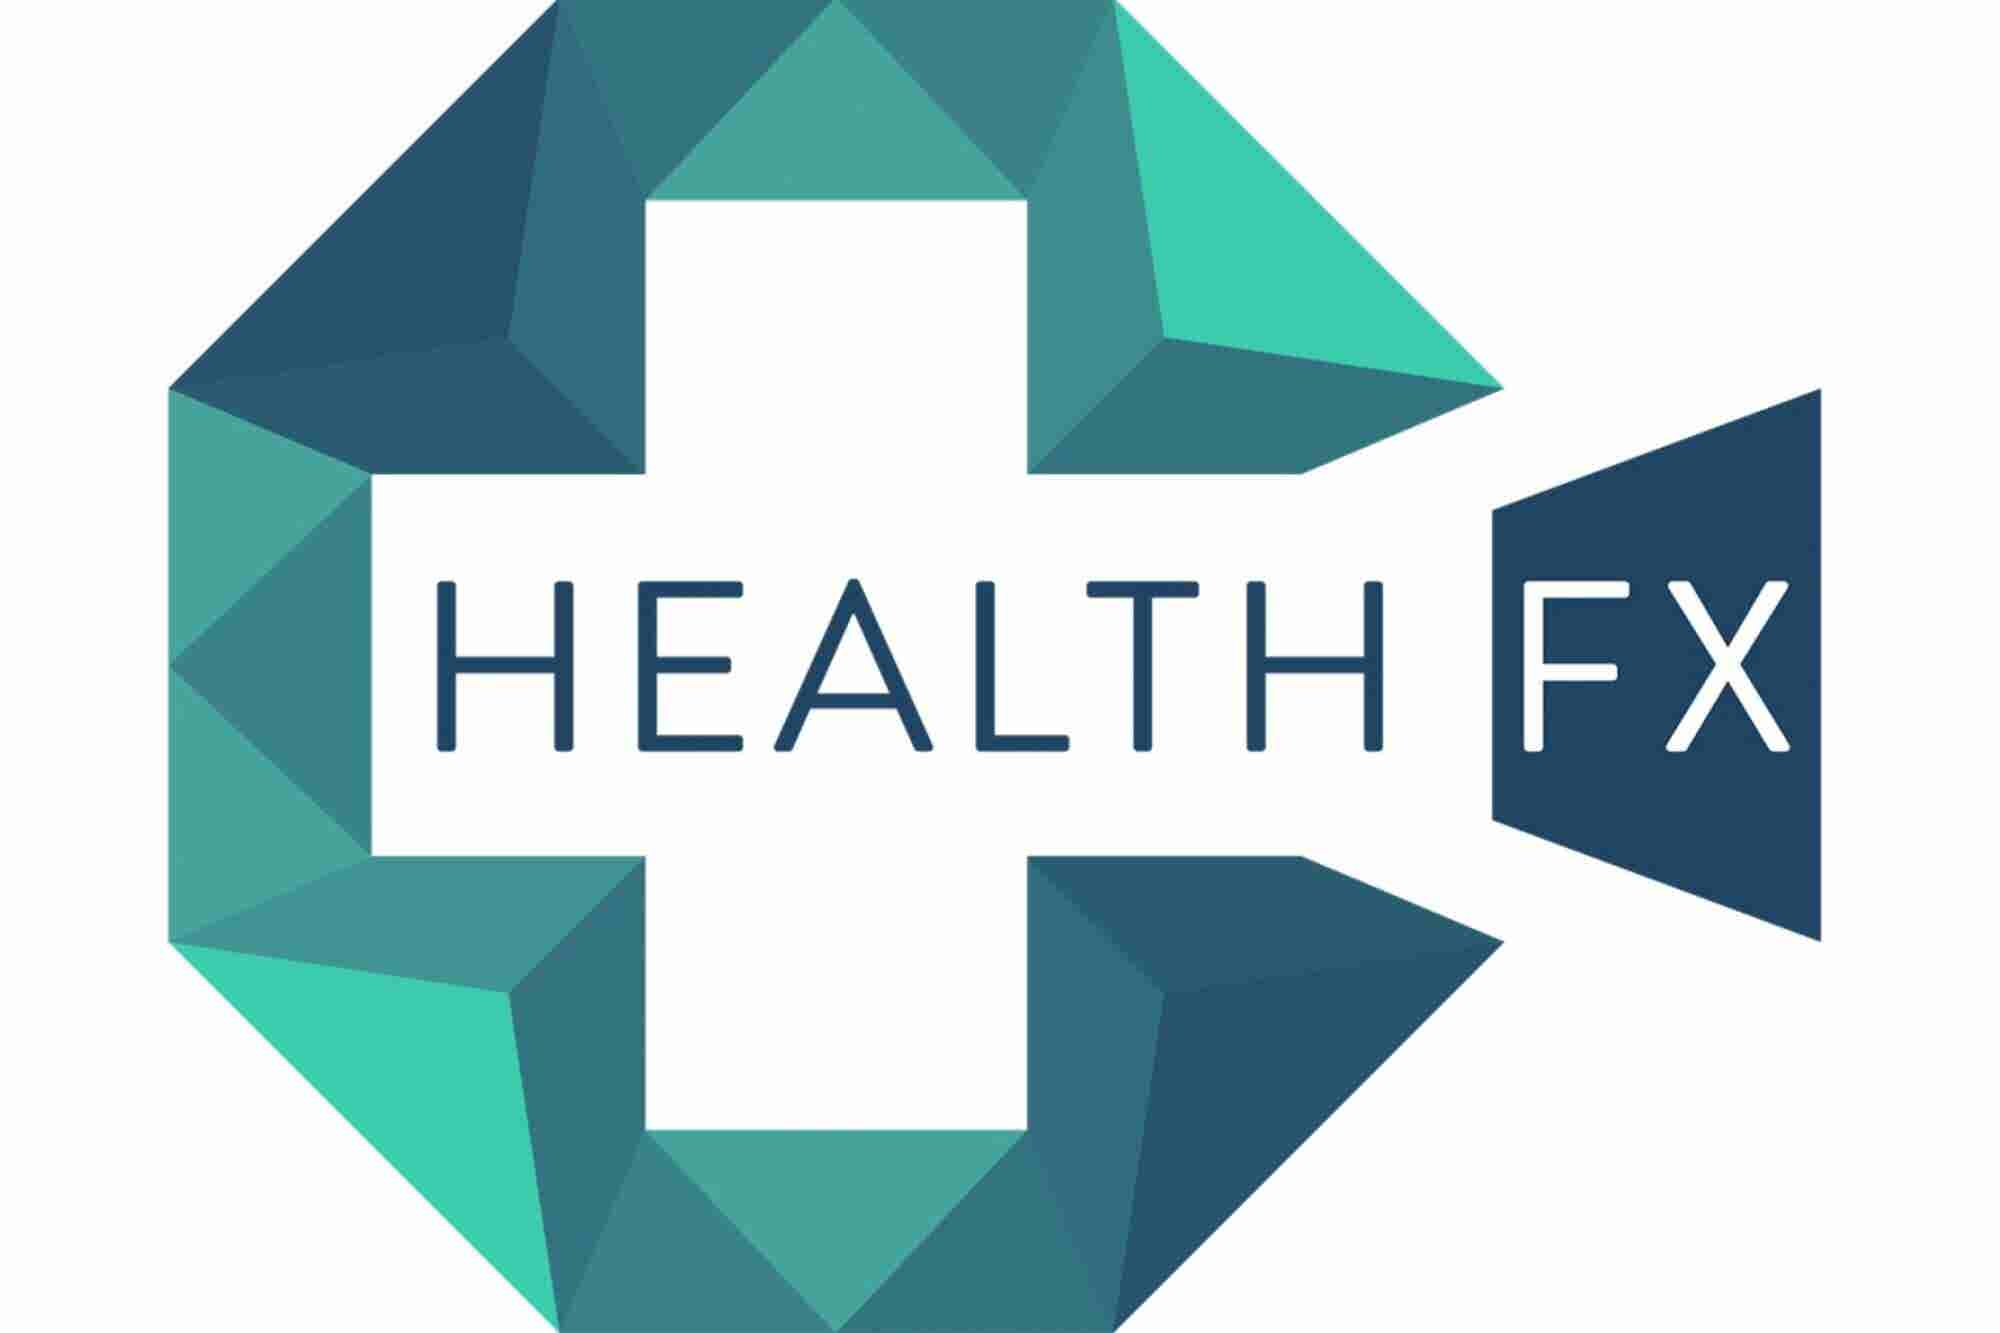 Leveraging Emerging Tech to Solve The Healthcare Industry's Major Issues